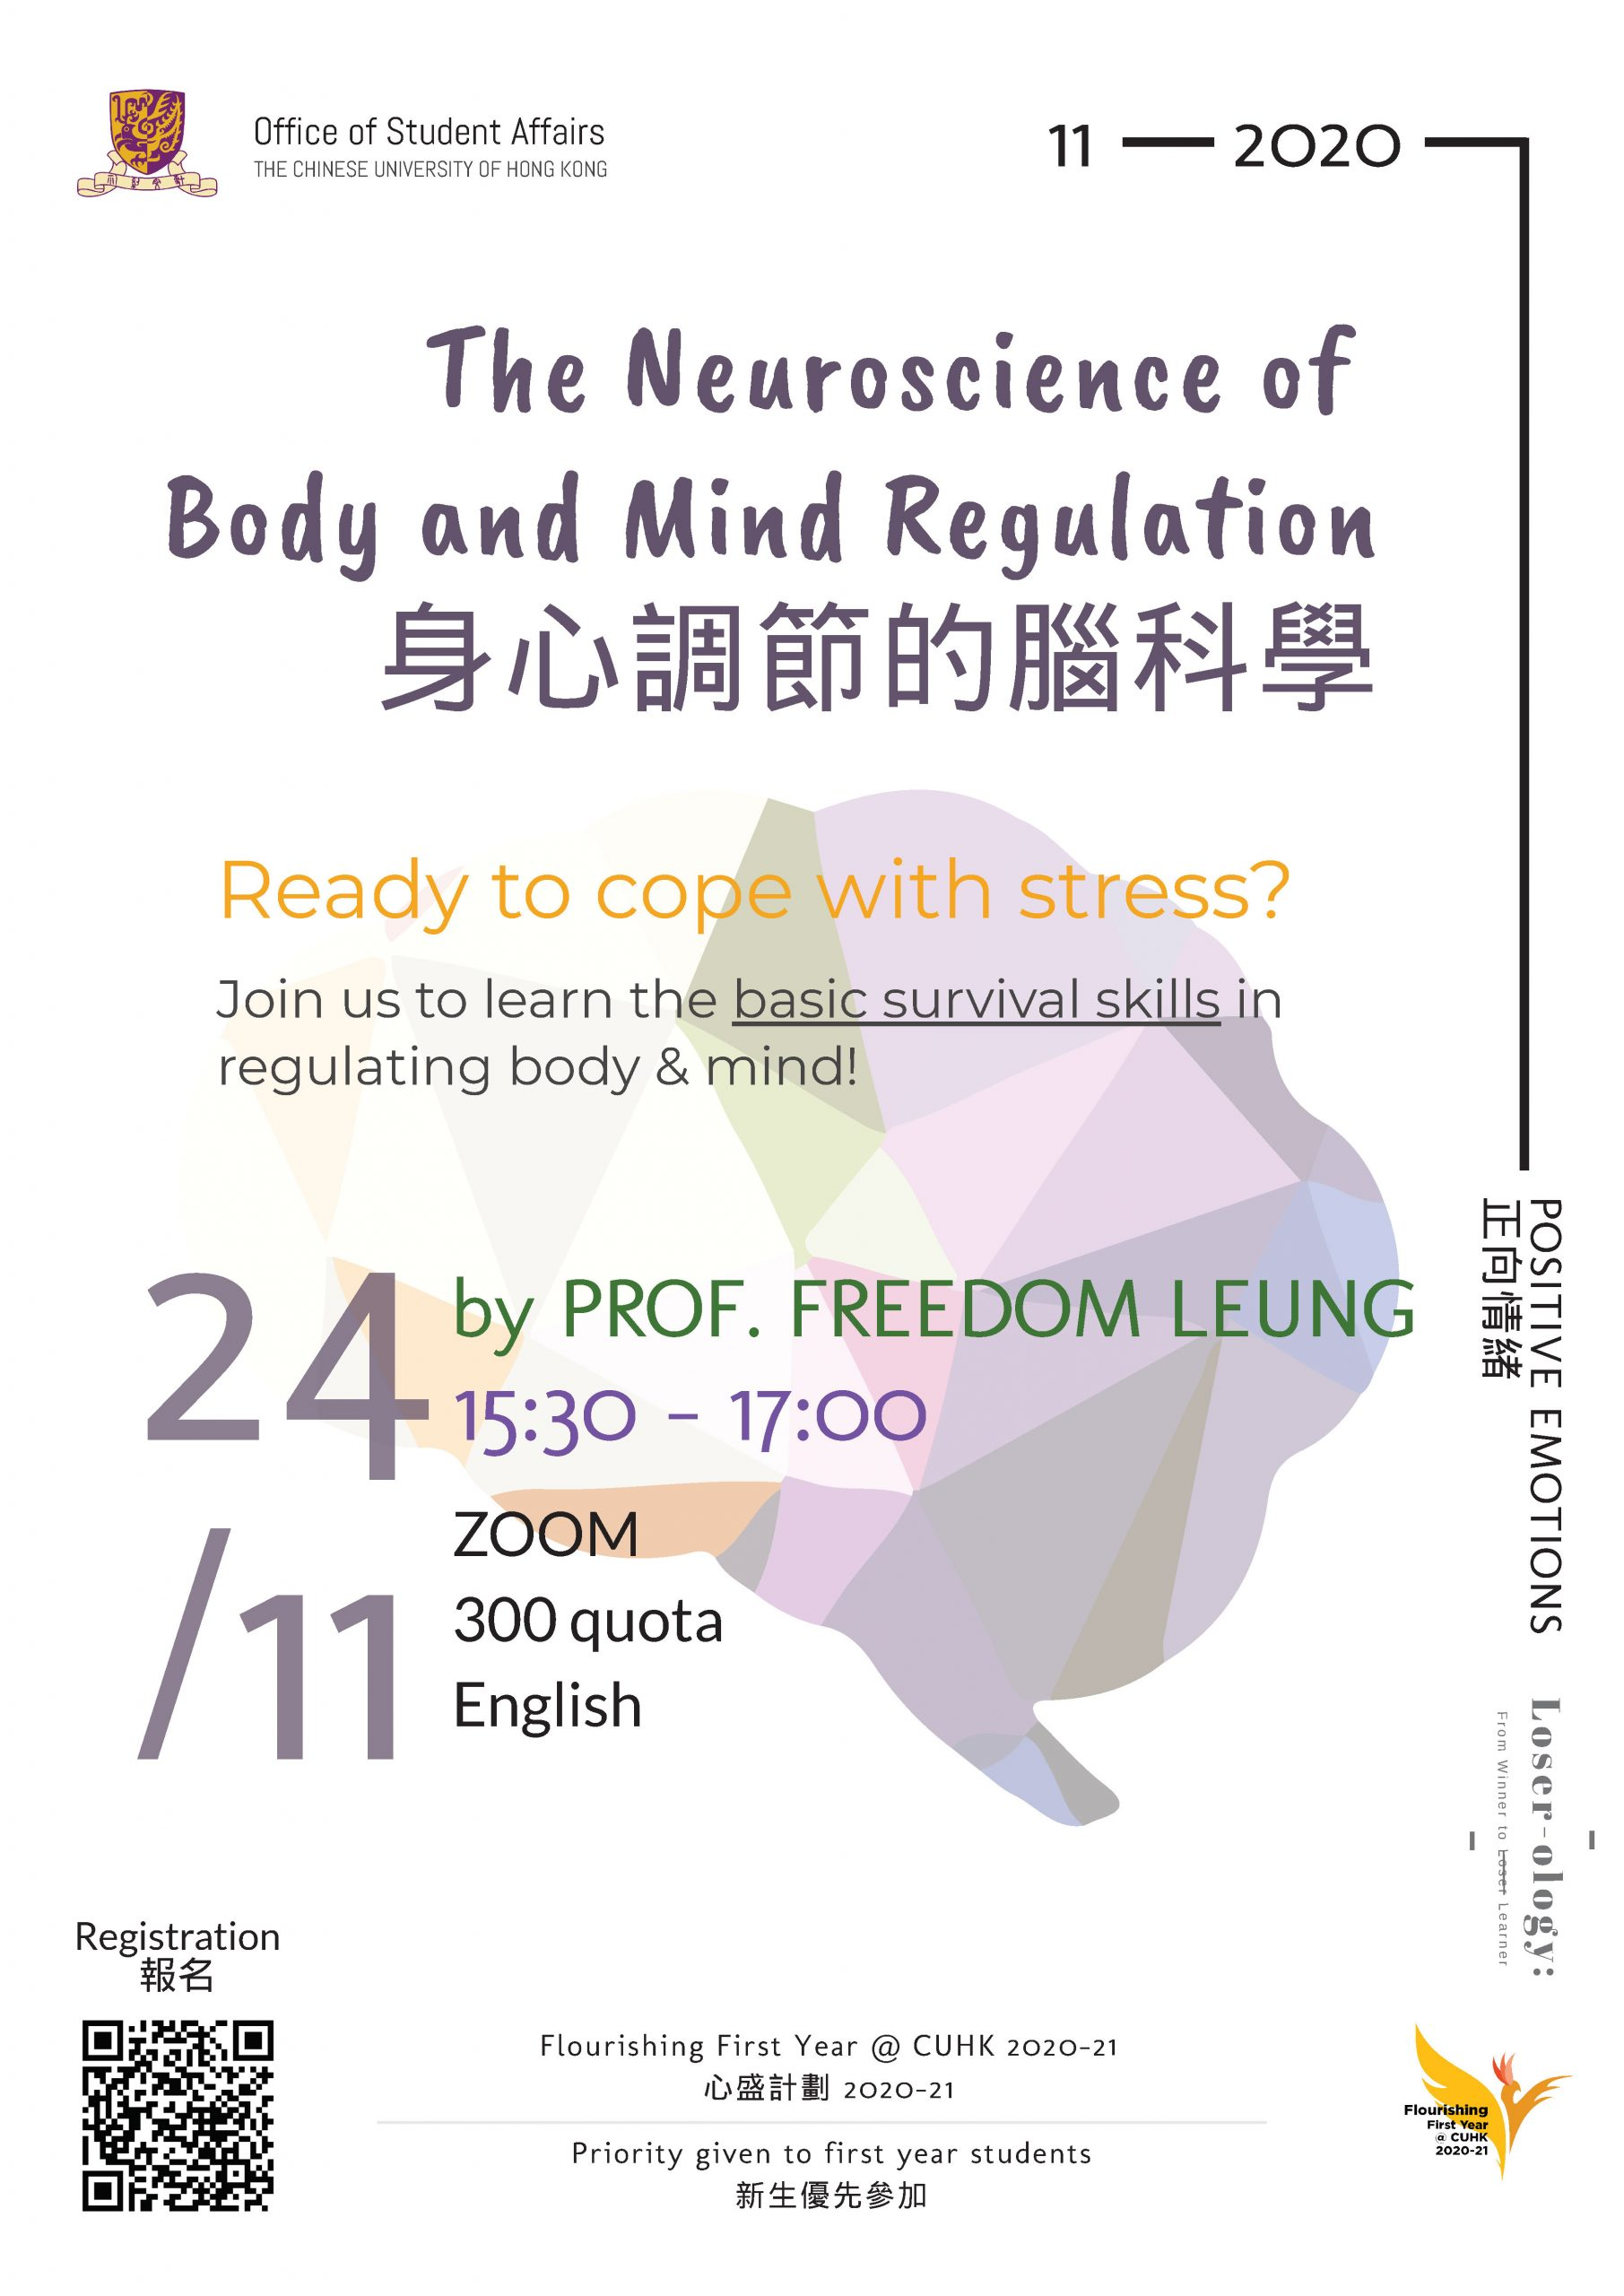 The Neuroscience of Body and Mind Regulation Workshop @Flourishing First Year